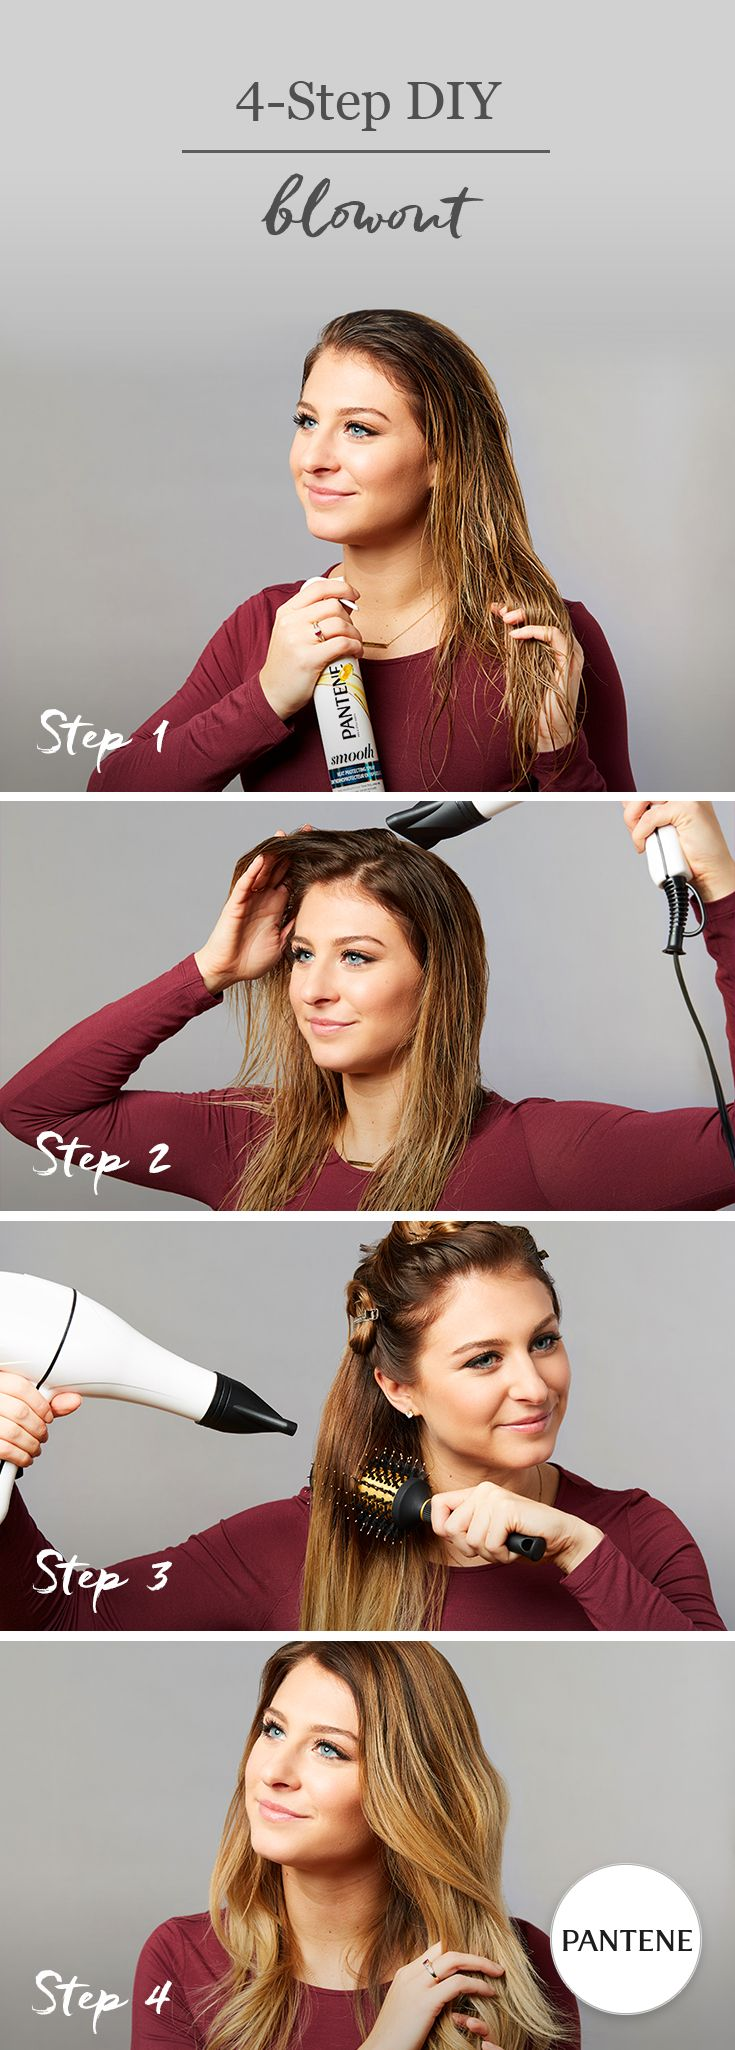 How to Get a SalonQuality Blowout at Home Voluminous